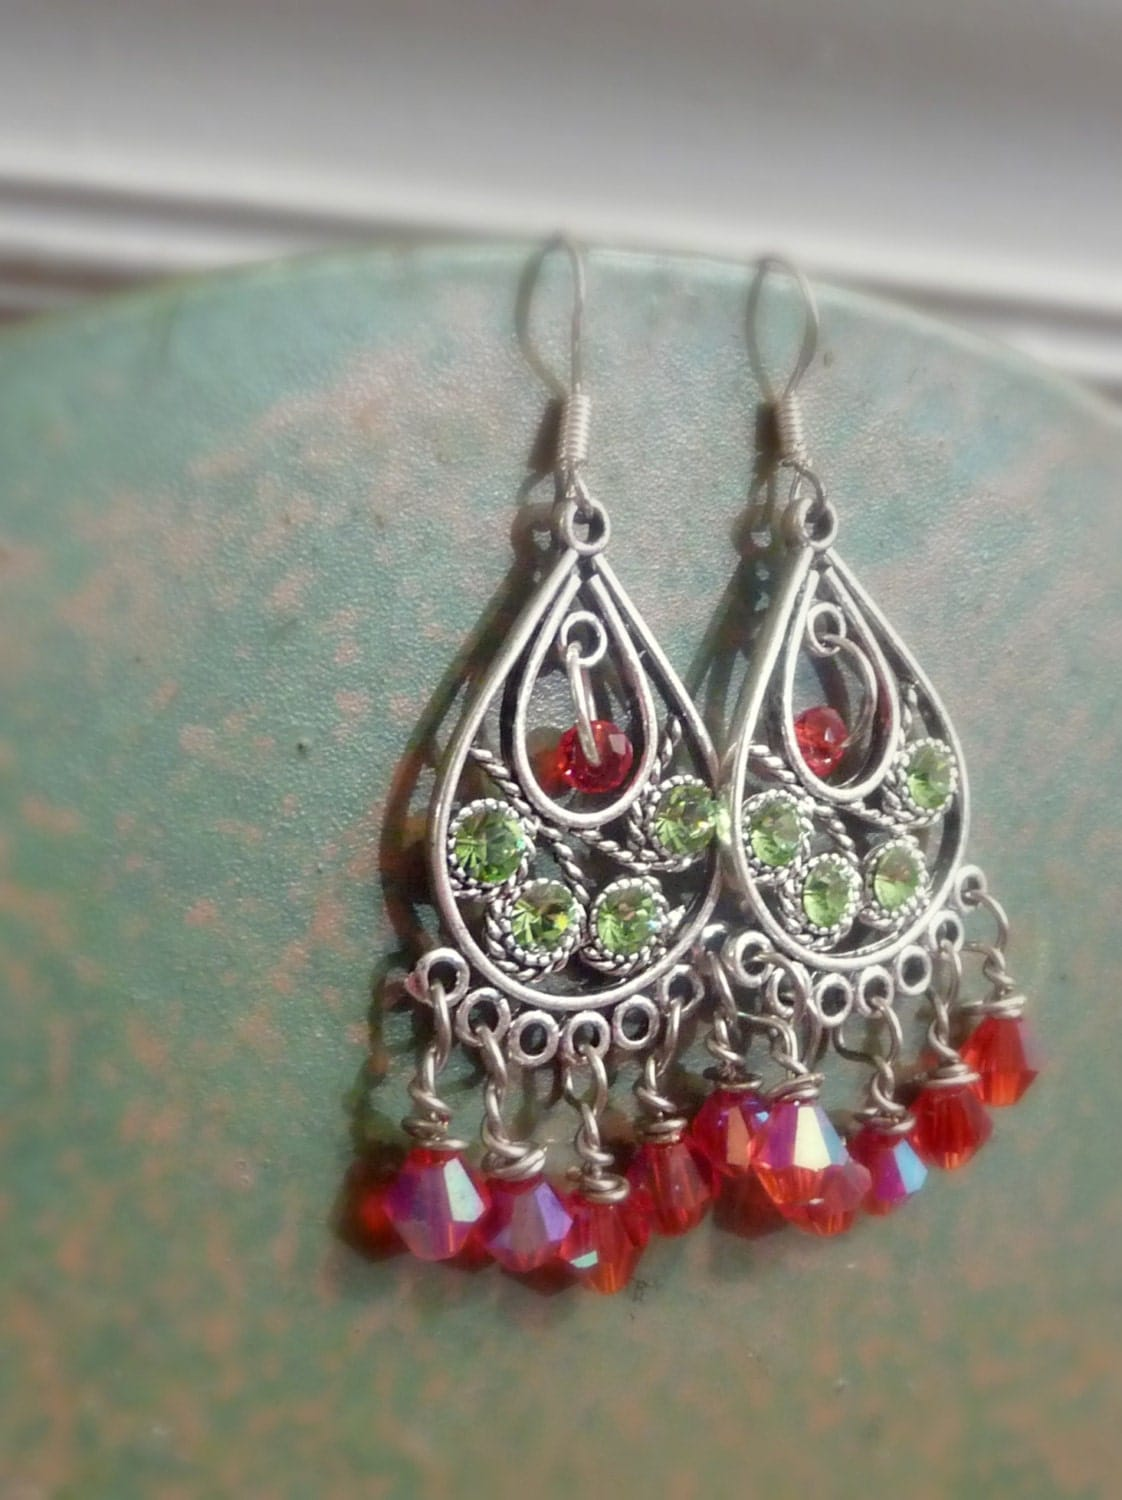 Christmas Holiday Earrings With Red and Green Glass, Sterling Silver Ear Wires - Mylana